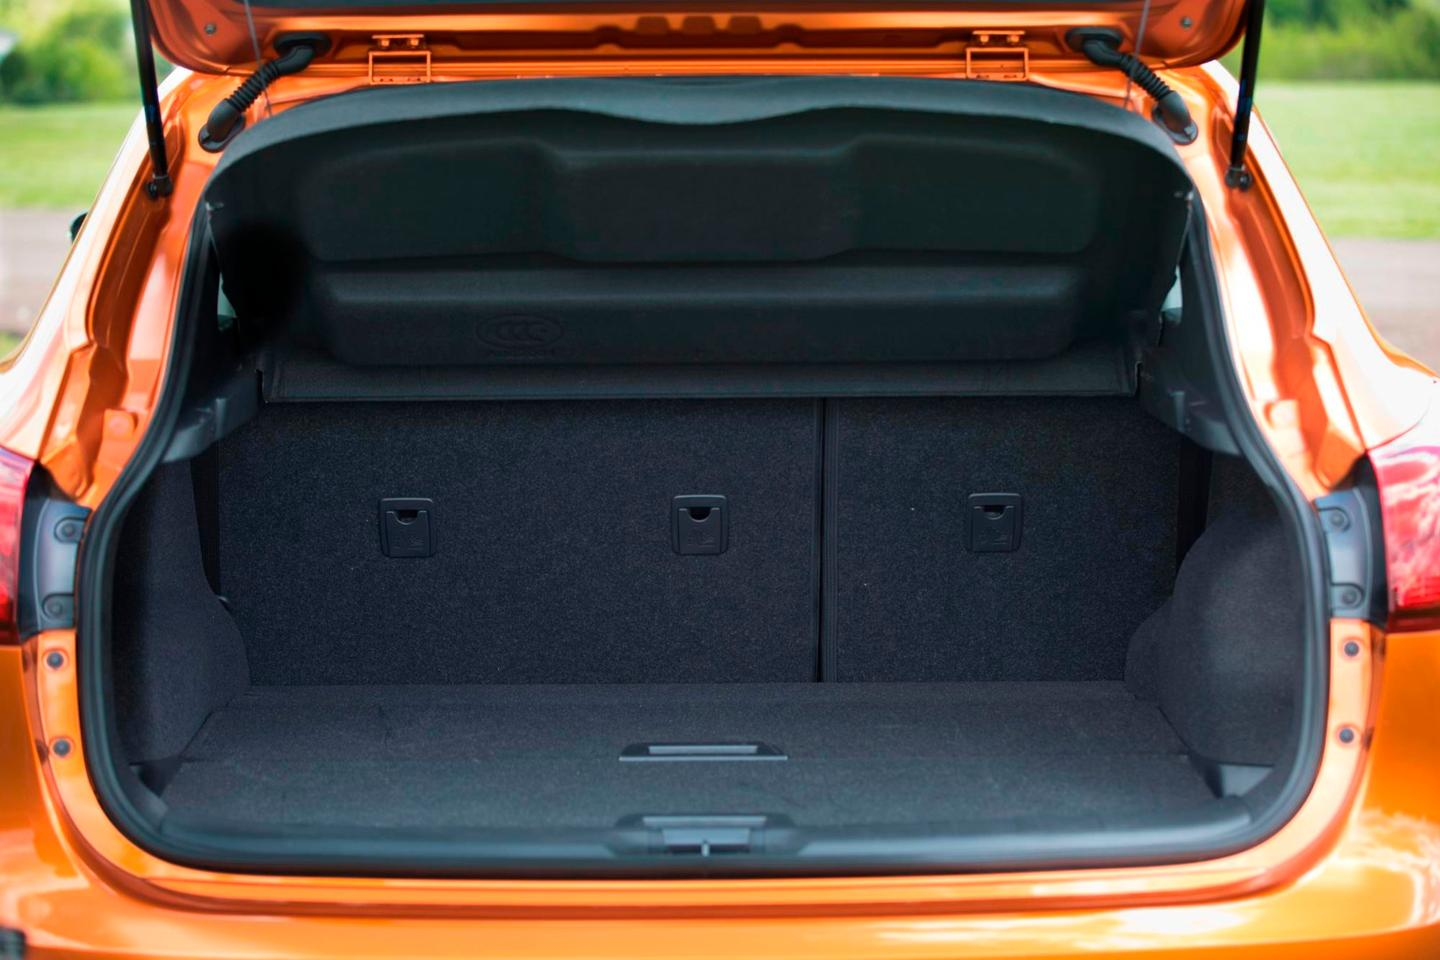 Cargo in the 2017 Rogue Sport is at 22.9 cubic ft (648.5 l) behind the second row and 61.1 cubic ft (1,730 l) with the second row folded